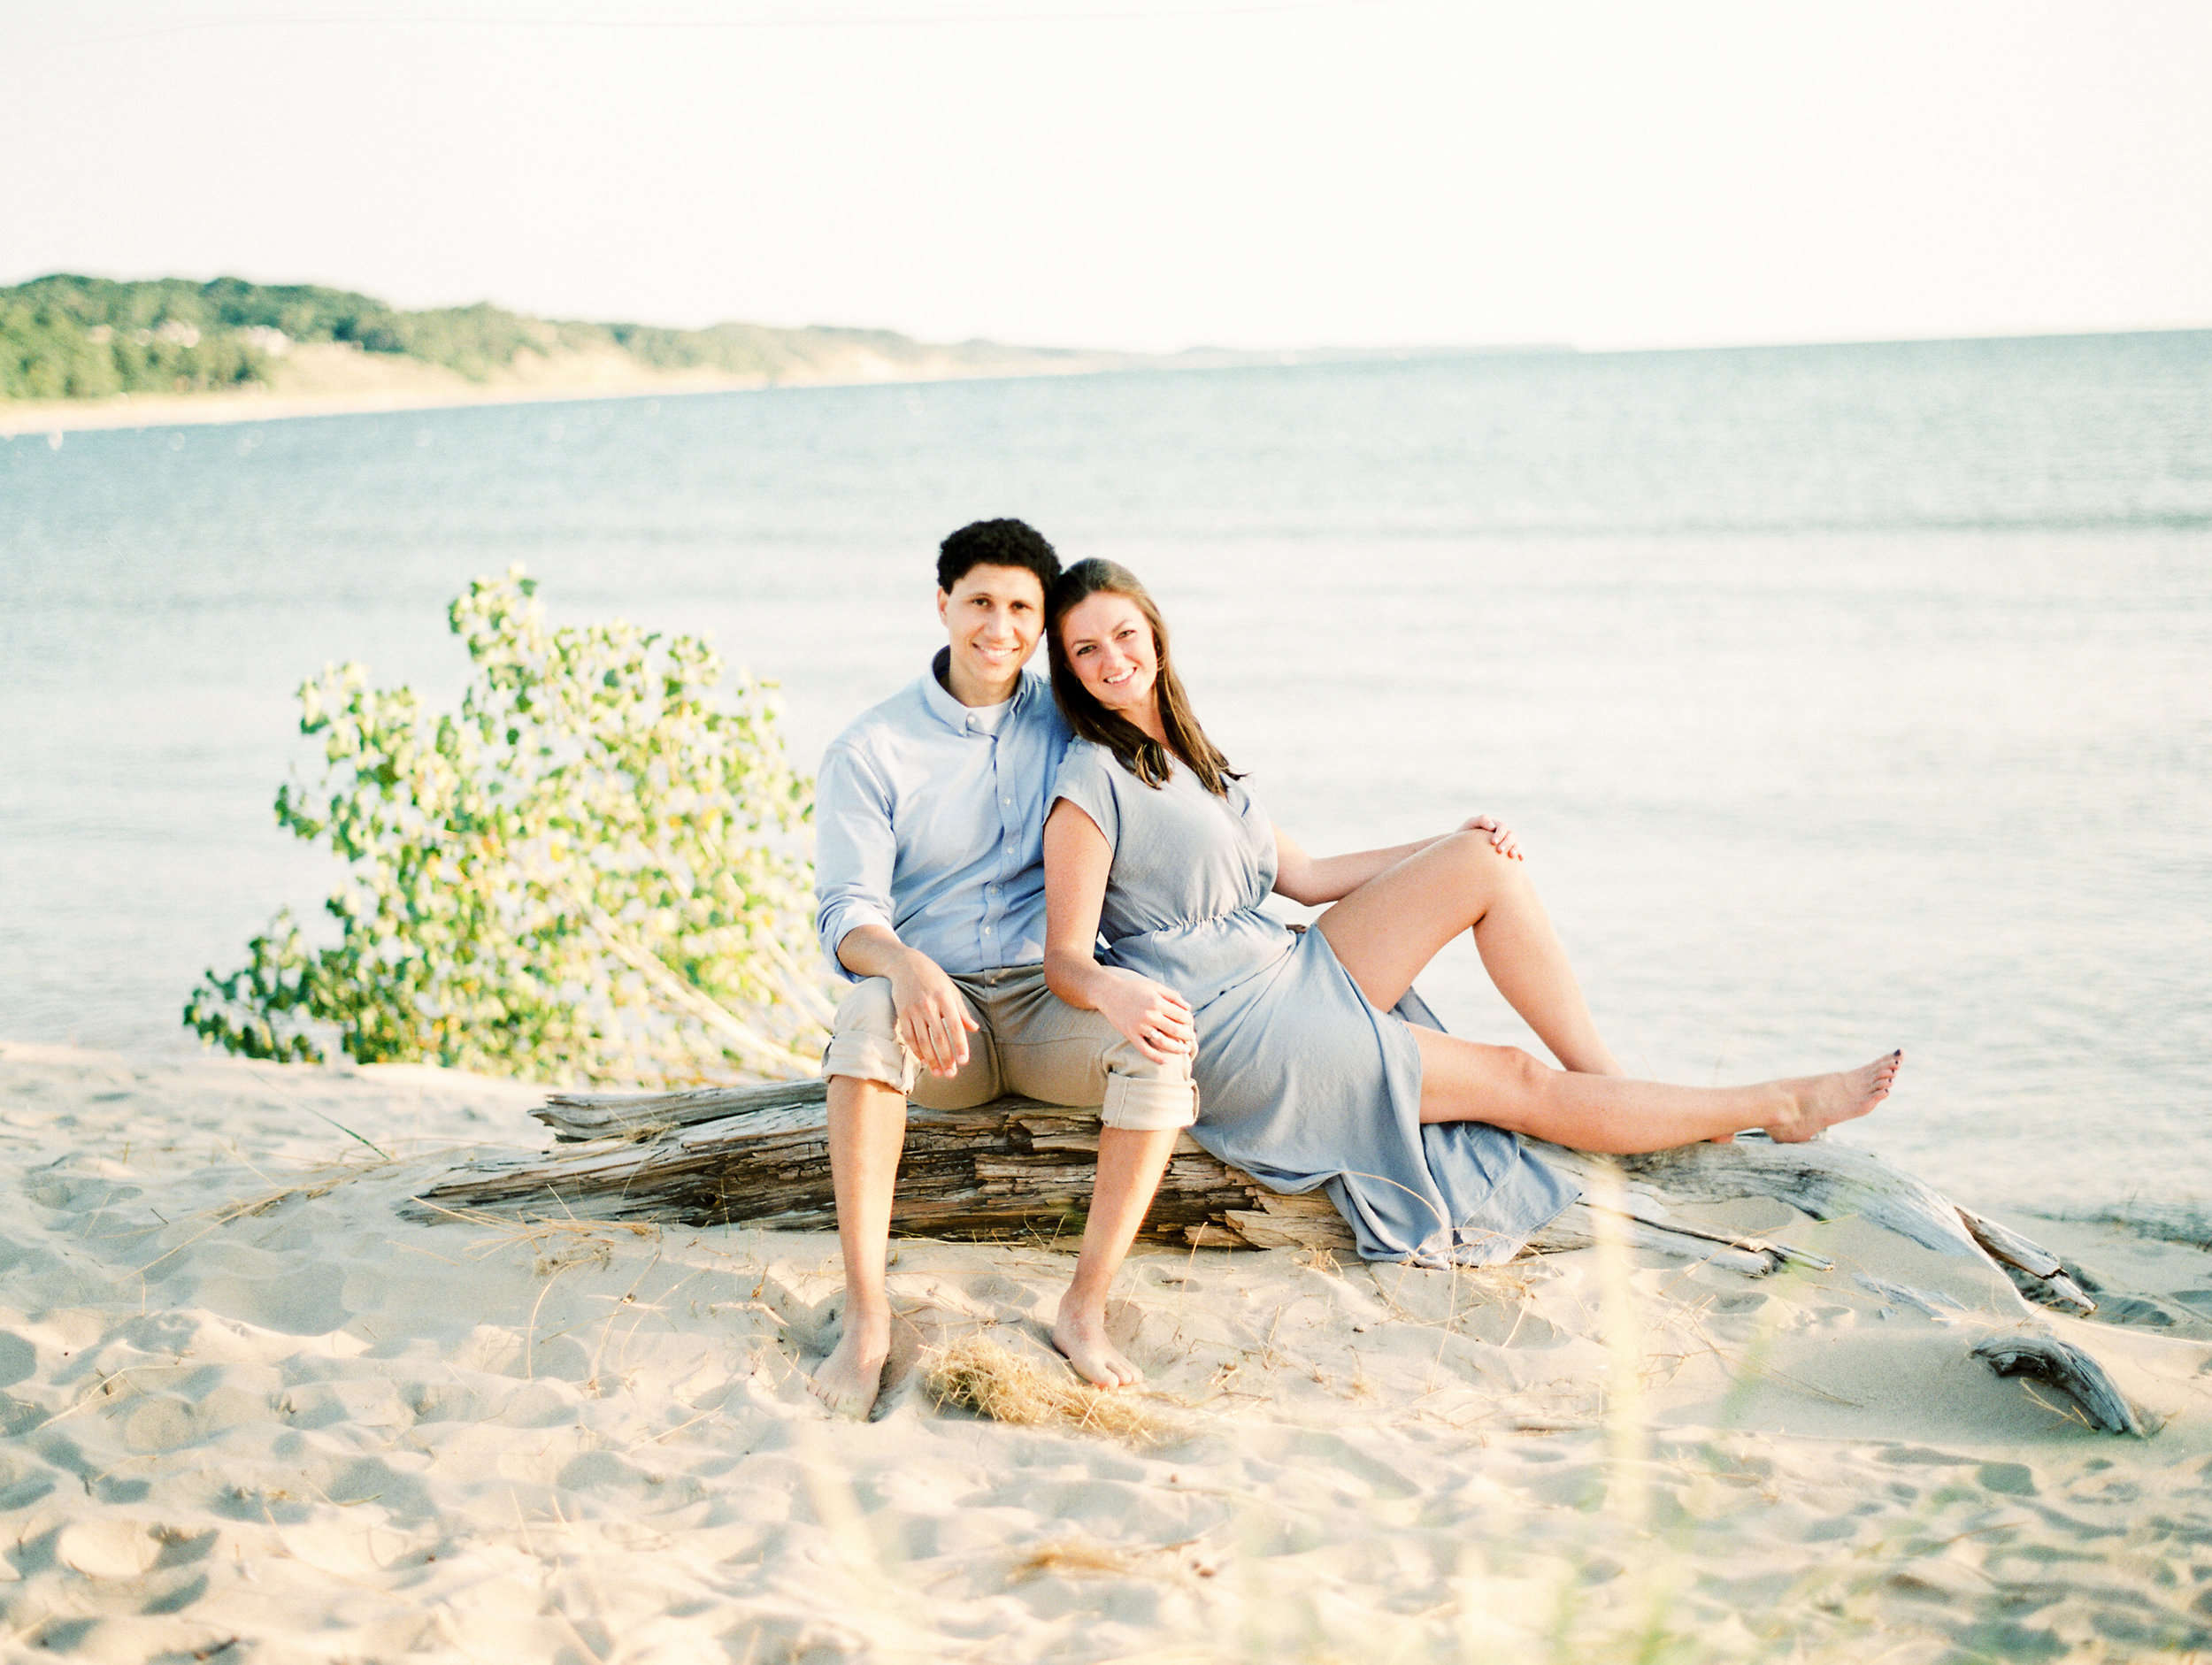 Lucie+Anthony+Engaged-42.jpg